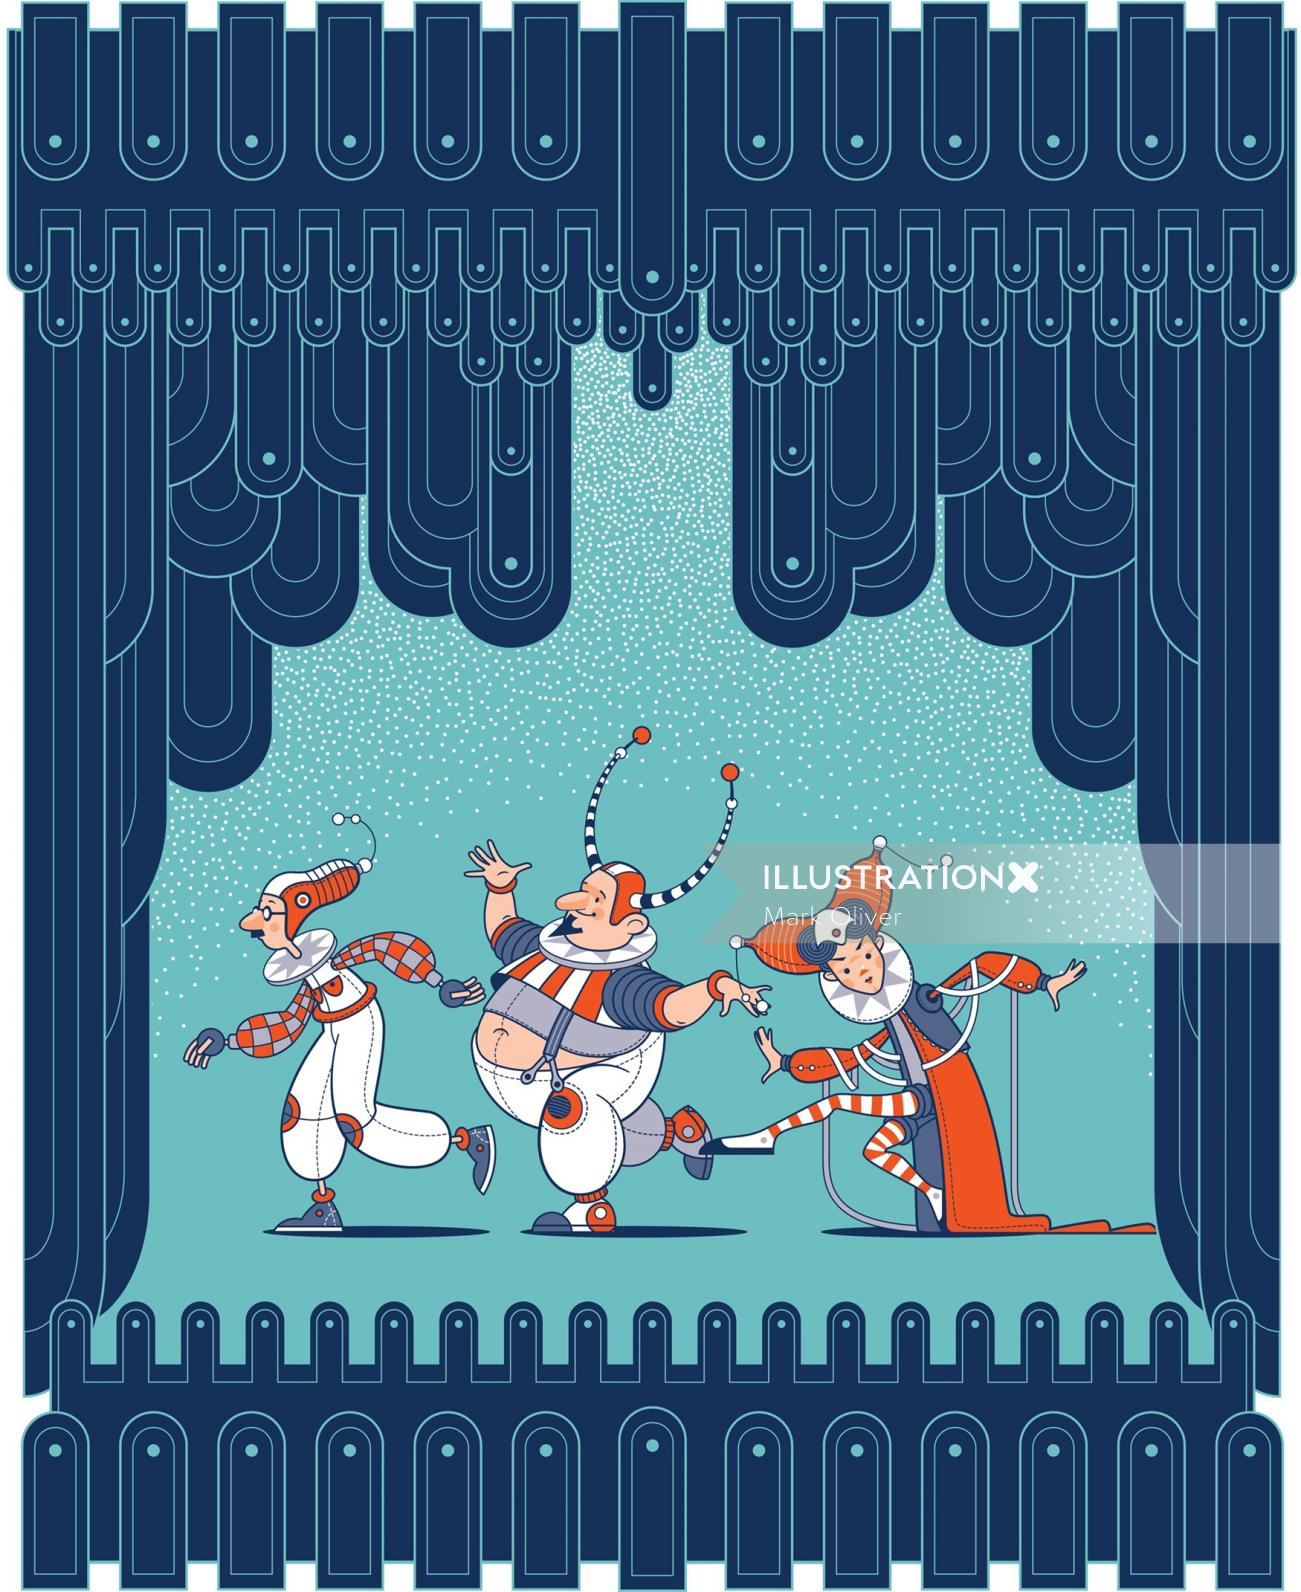 Dancing clowns in a theater